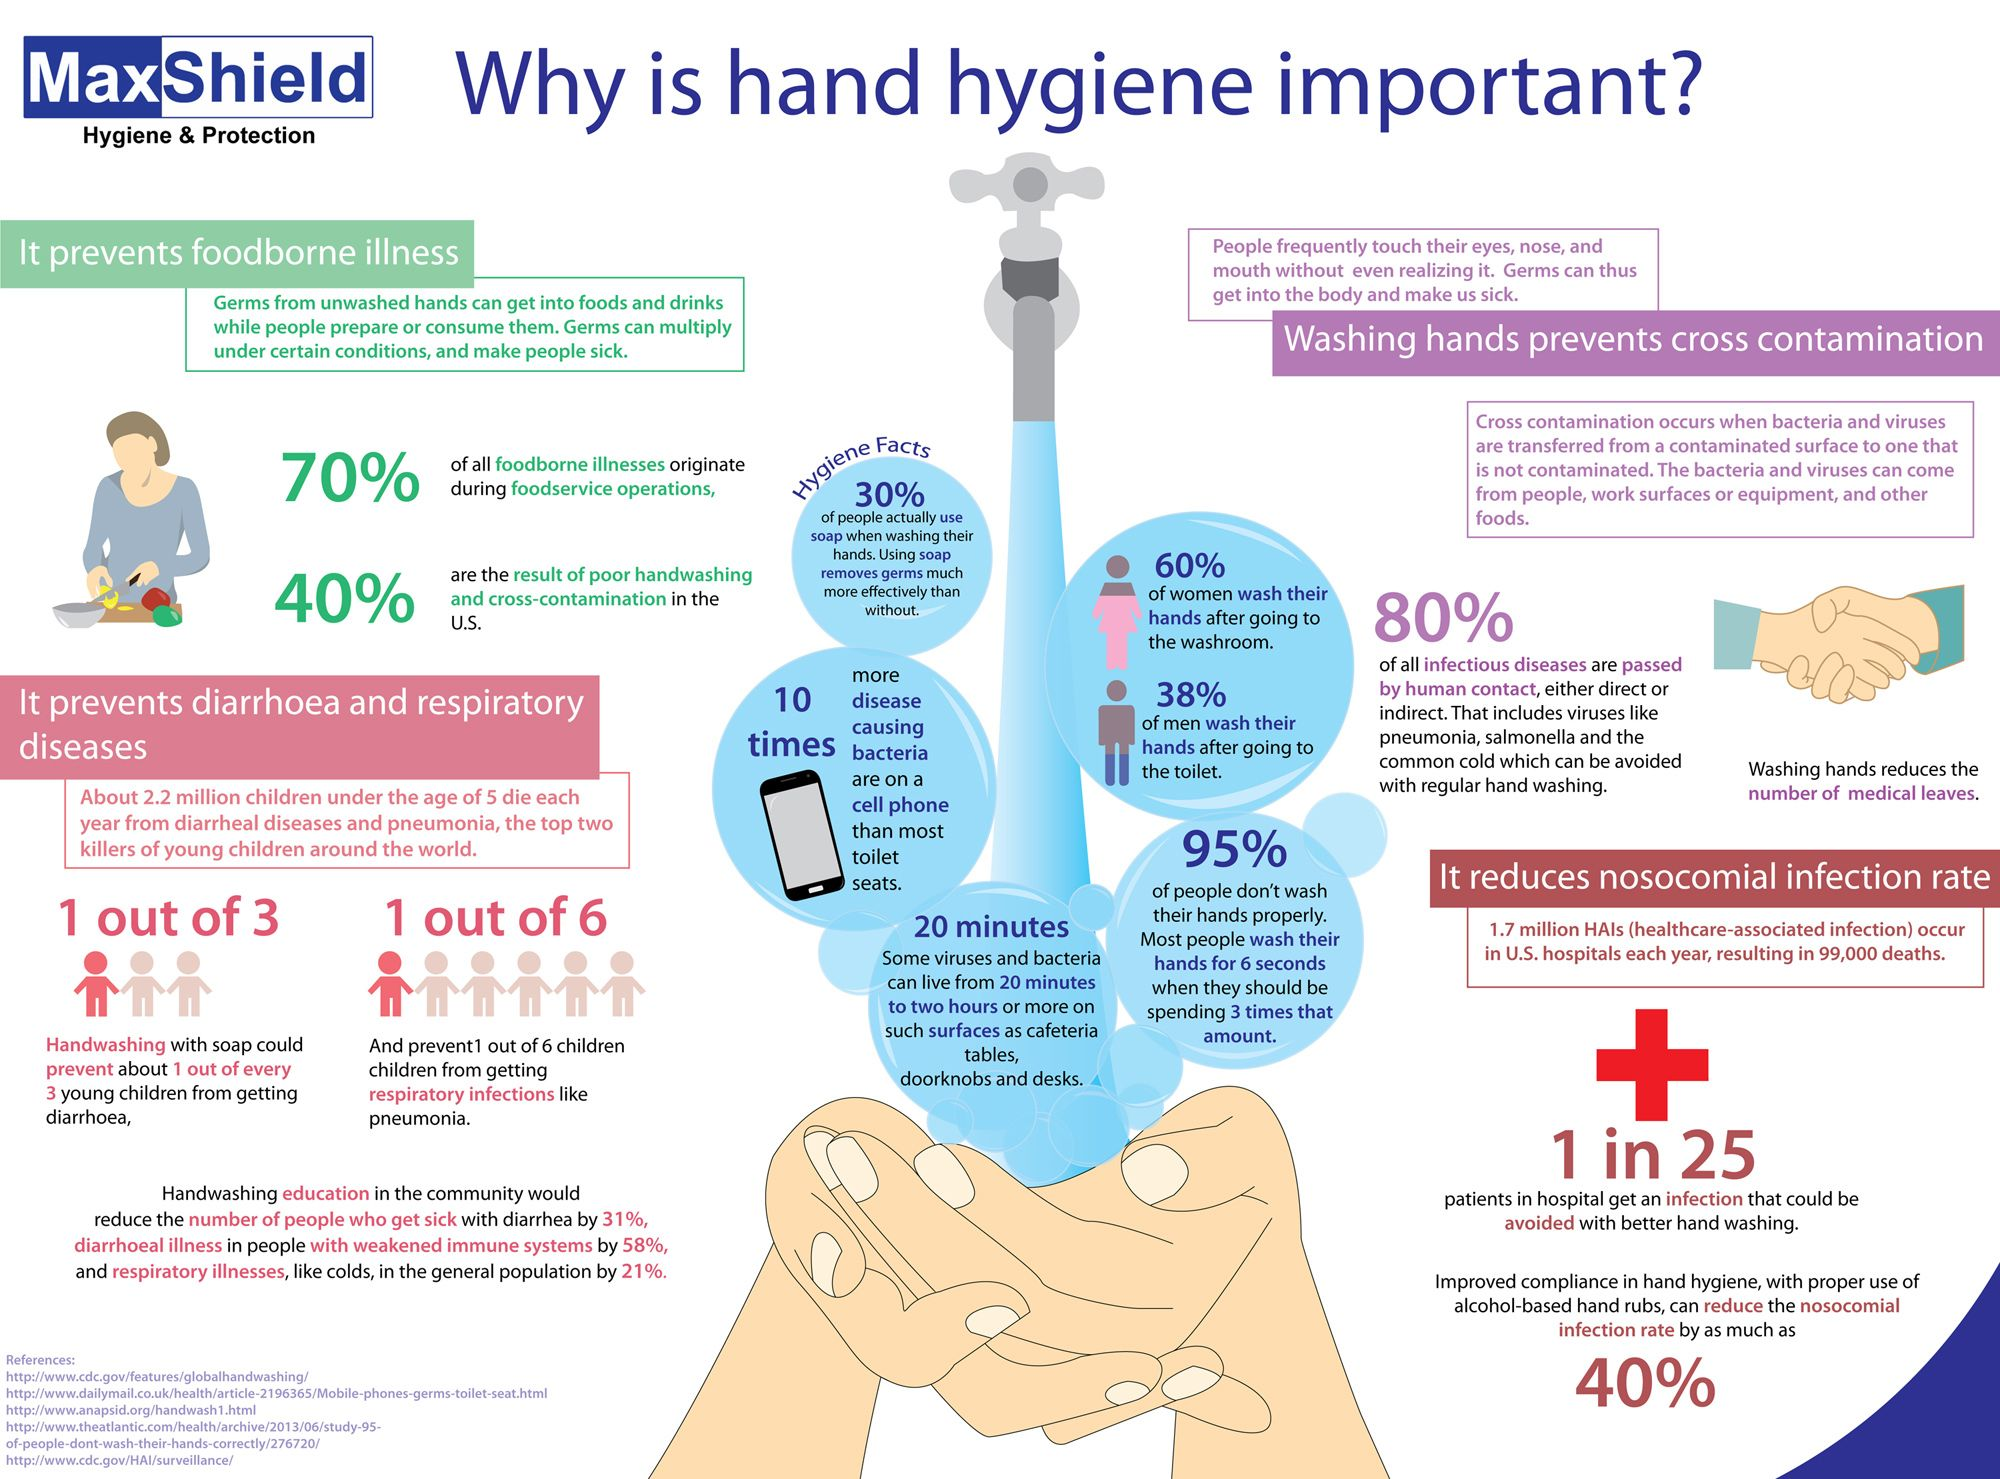 Hand Hygiene Plays An Important Role In Preventing The